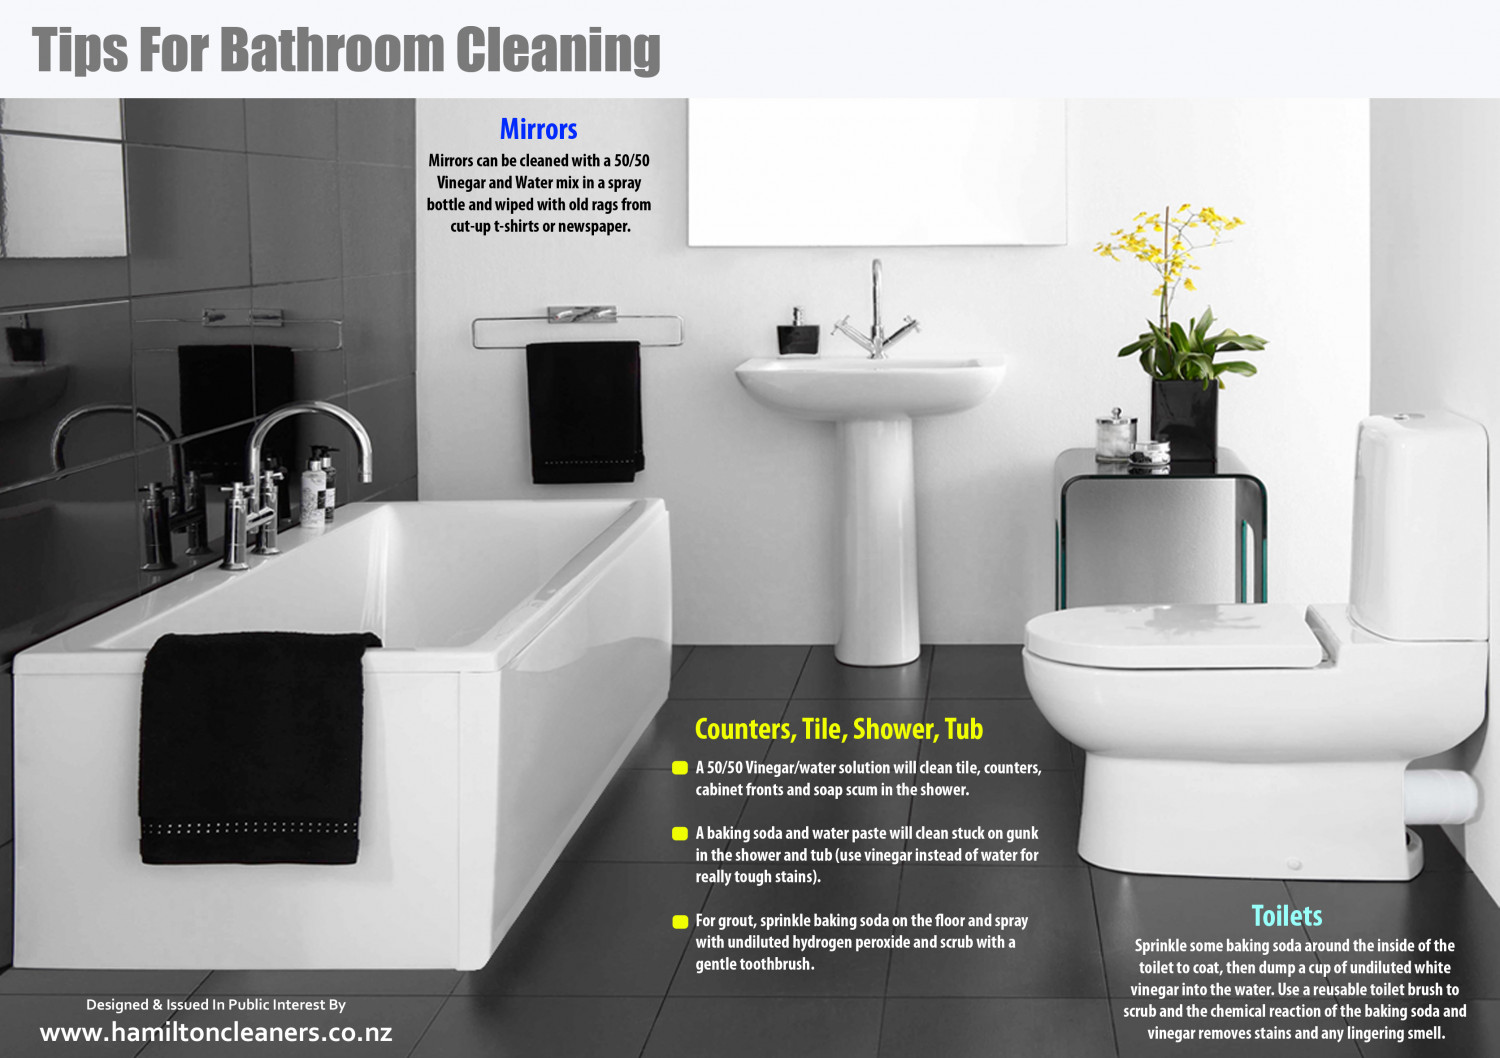 Tips For Bathroom Cleaning Visually - Bathroom cleaning tips vinegar